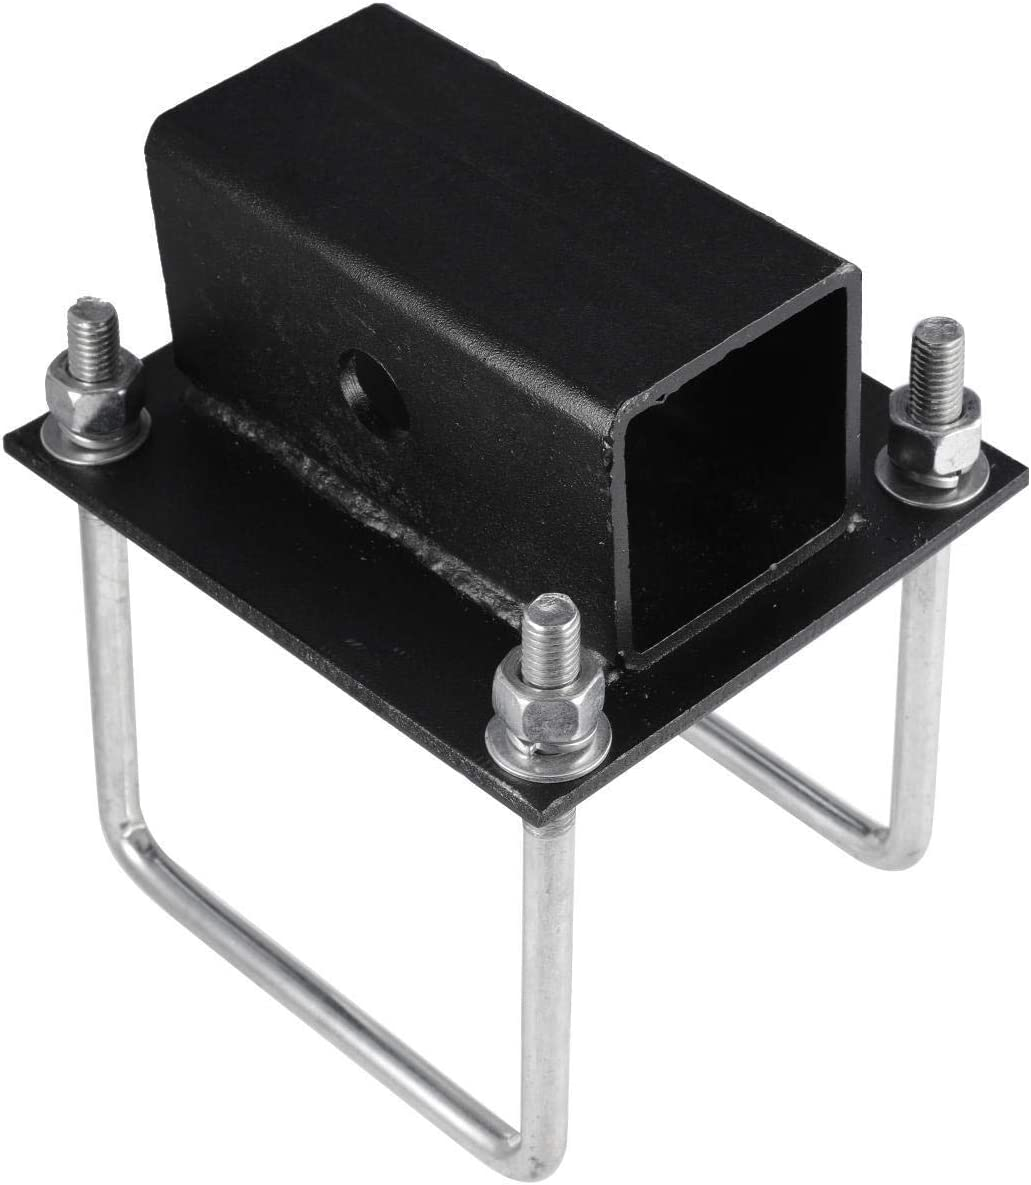 AUXMART RV Bumper Hitch Receiver 2 inches Adapter Fits for a Variety of RV Styles with 4 x 4 Square Continuous Welded RV Bumpers